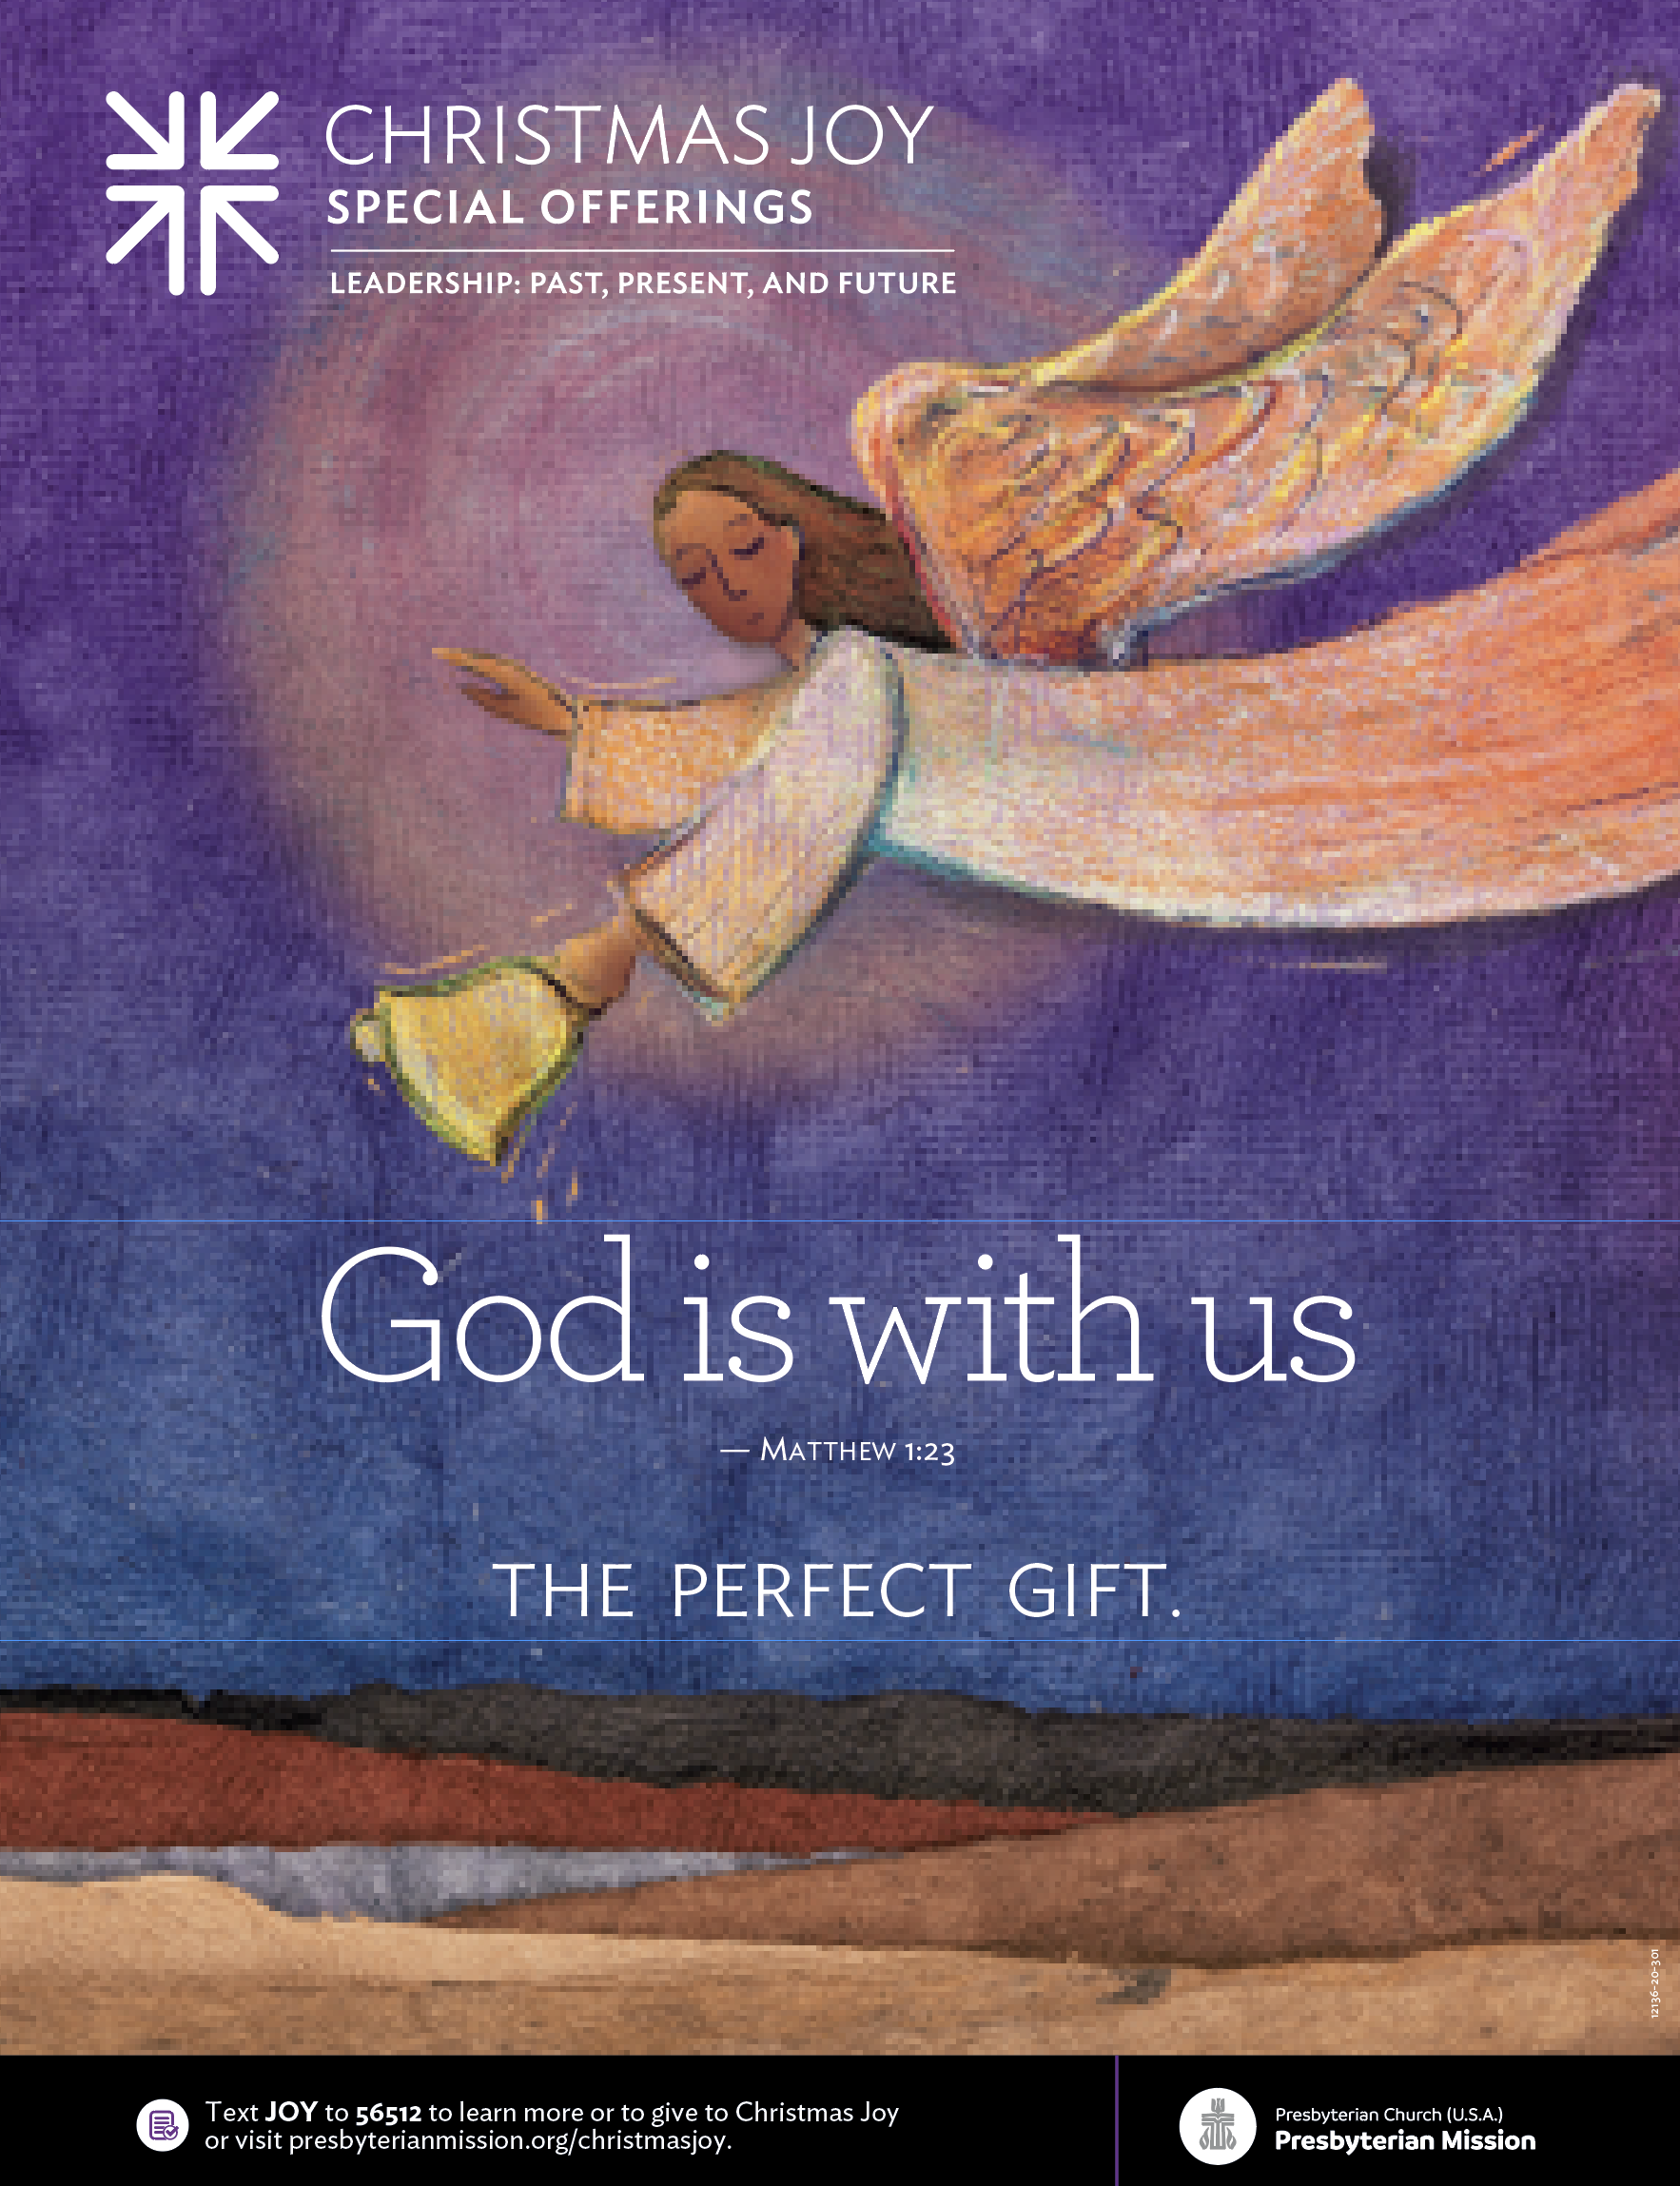 Christmas Joy Offering Pcusa 2020 Presbyterian Special Offerings   Christmas Joy